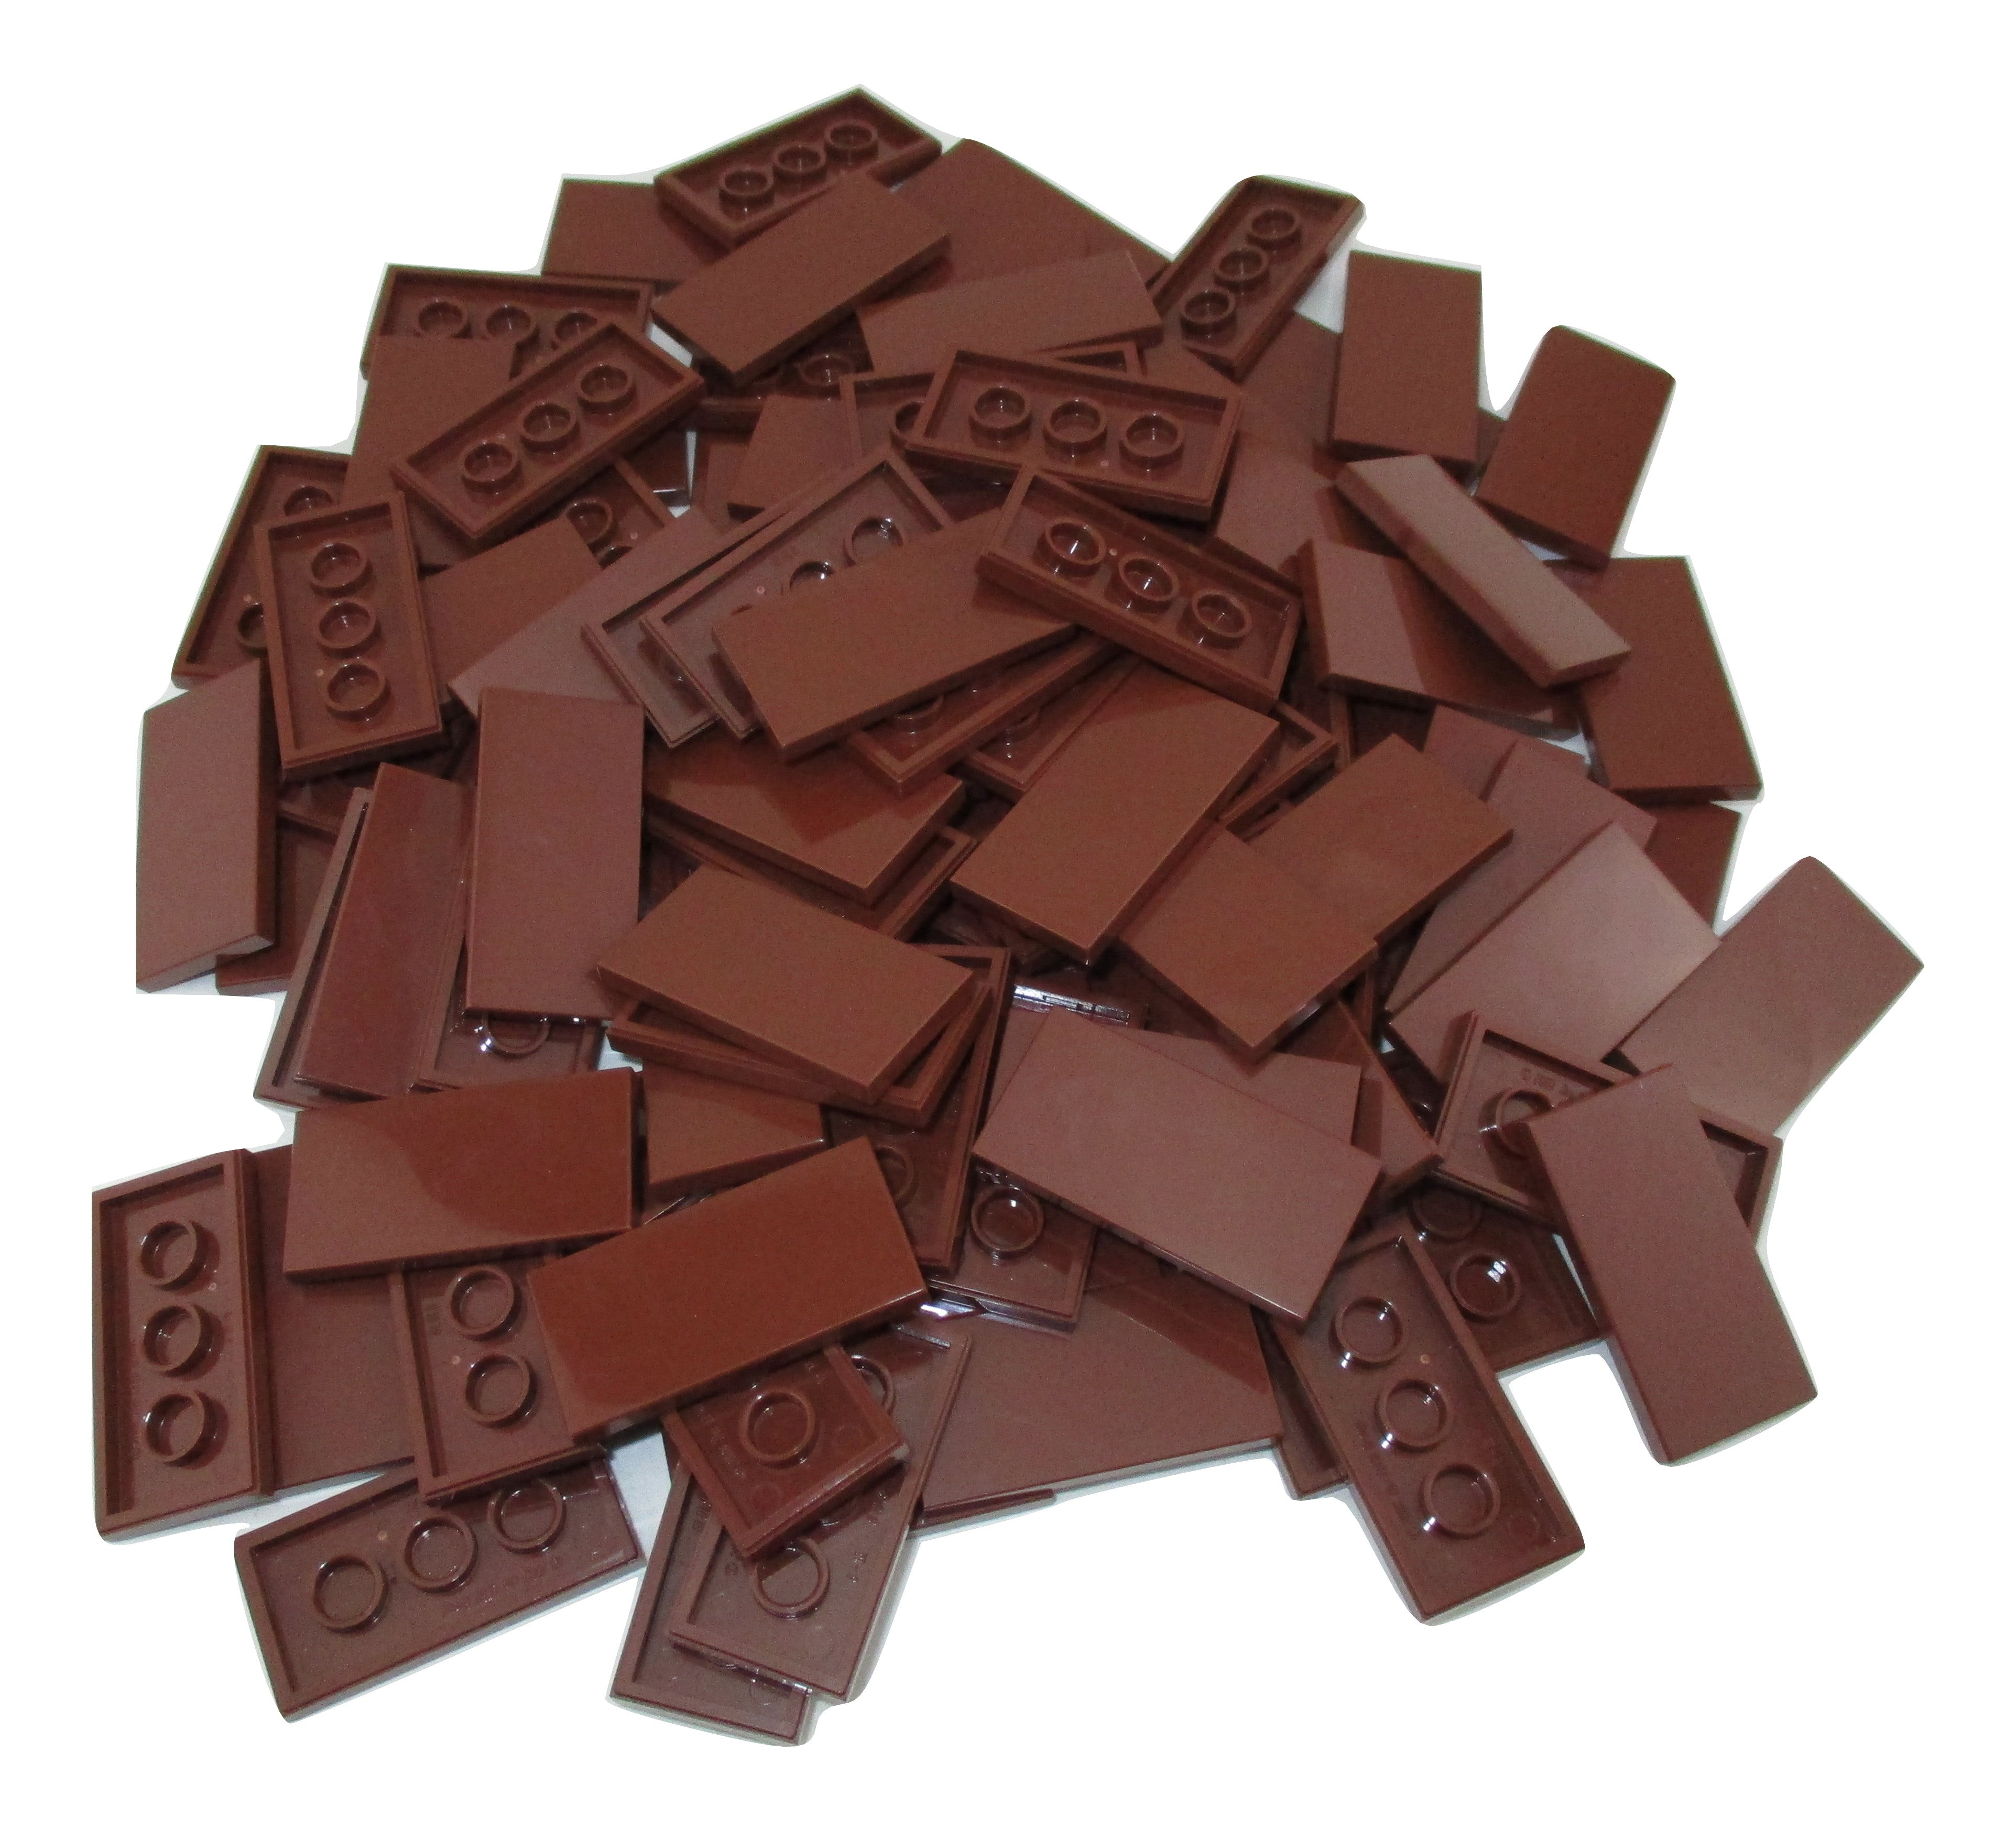 LEGO Reddish Brown Tile 2x4 Lot of 100 Parts Pieces 87079